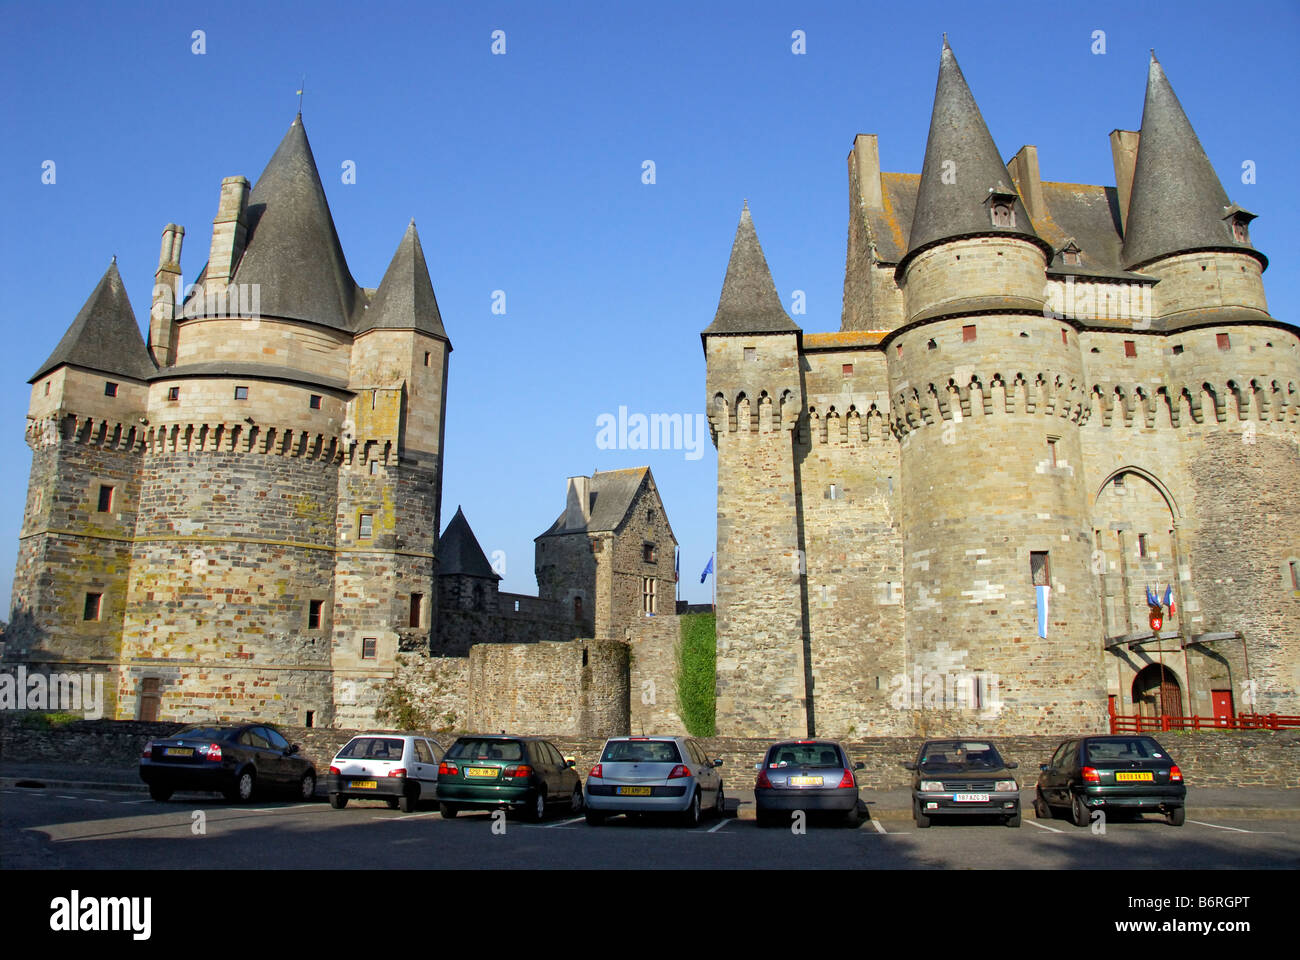 15th century towers and ramparts of chateau Vitré Brittany France - Stock Image